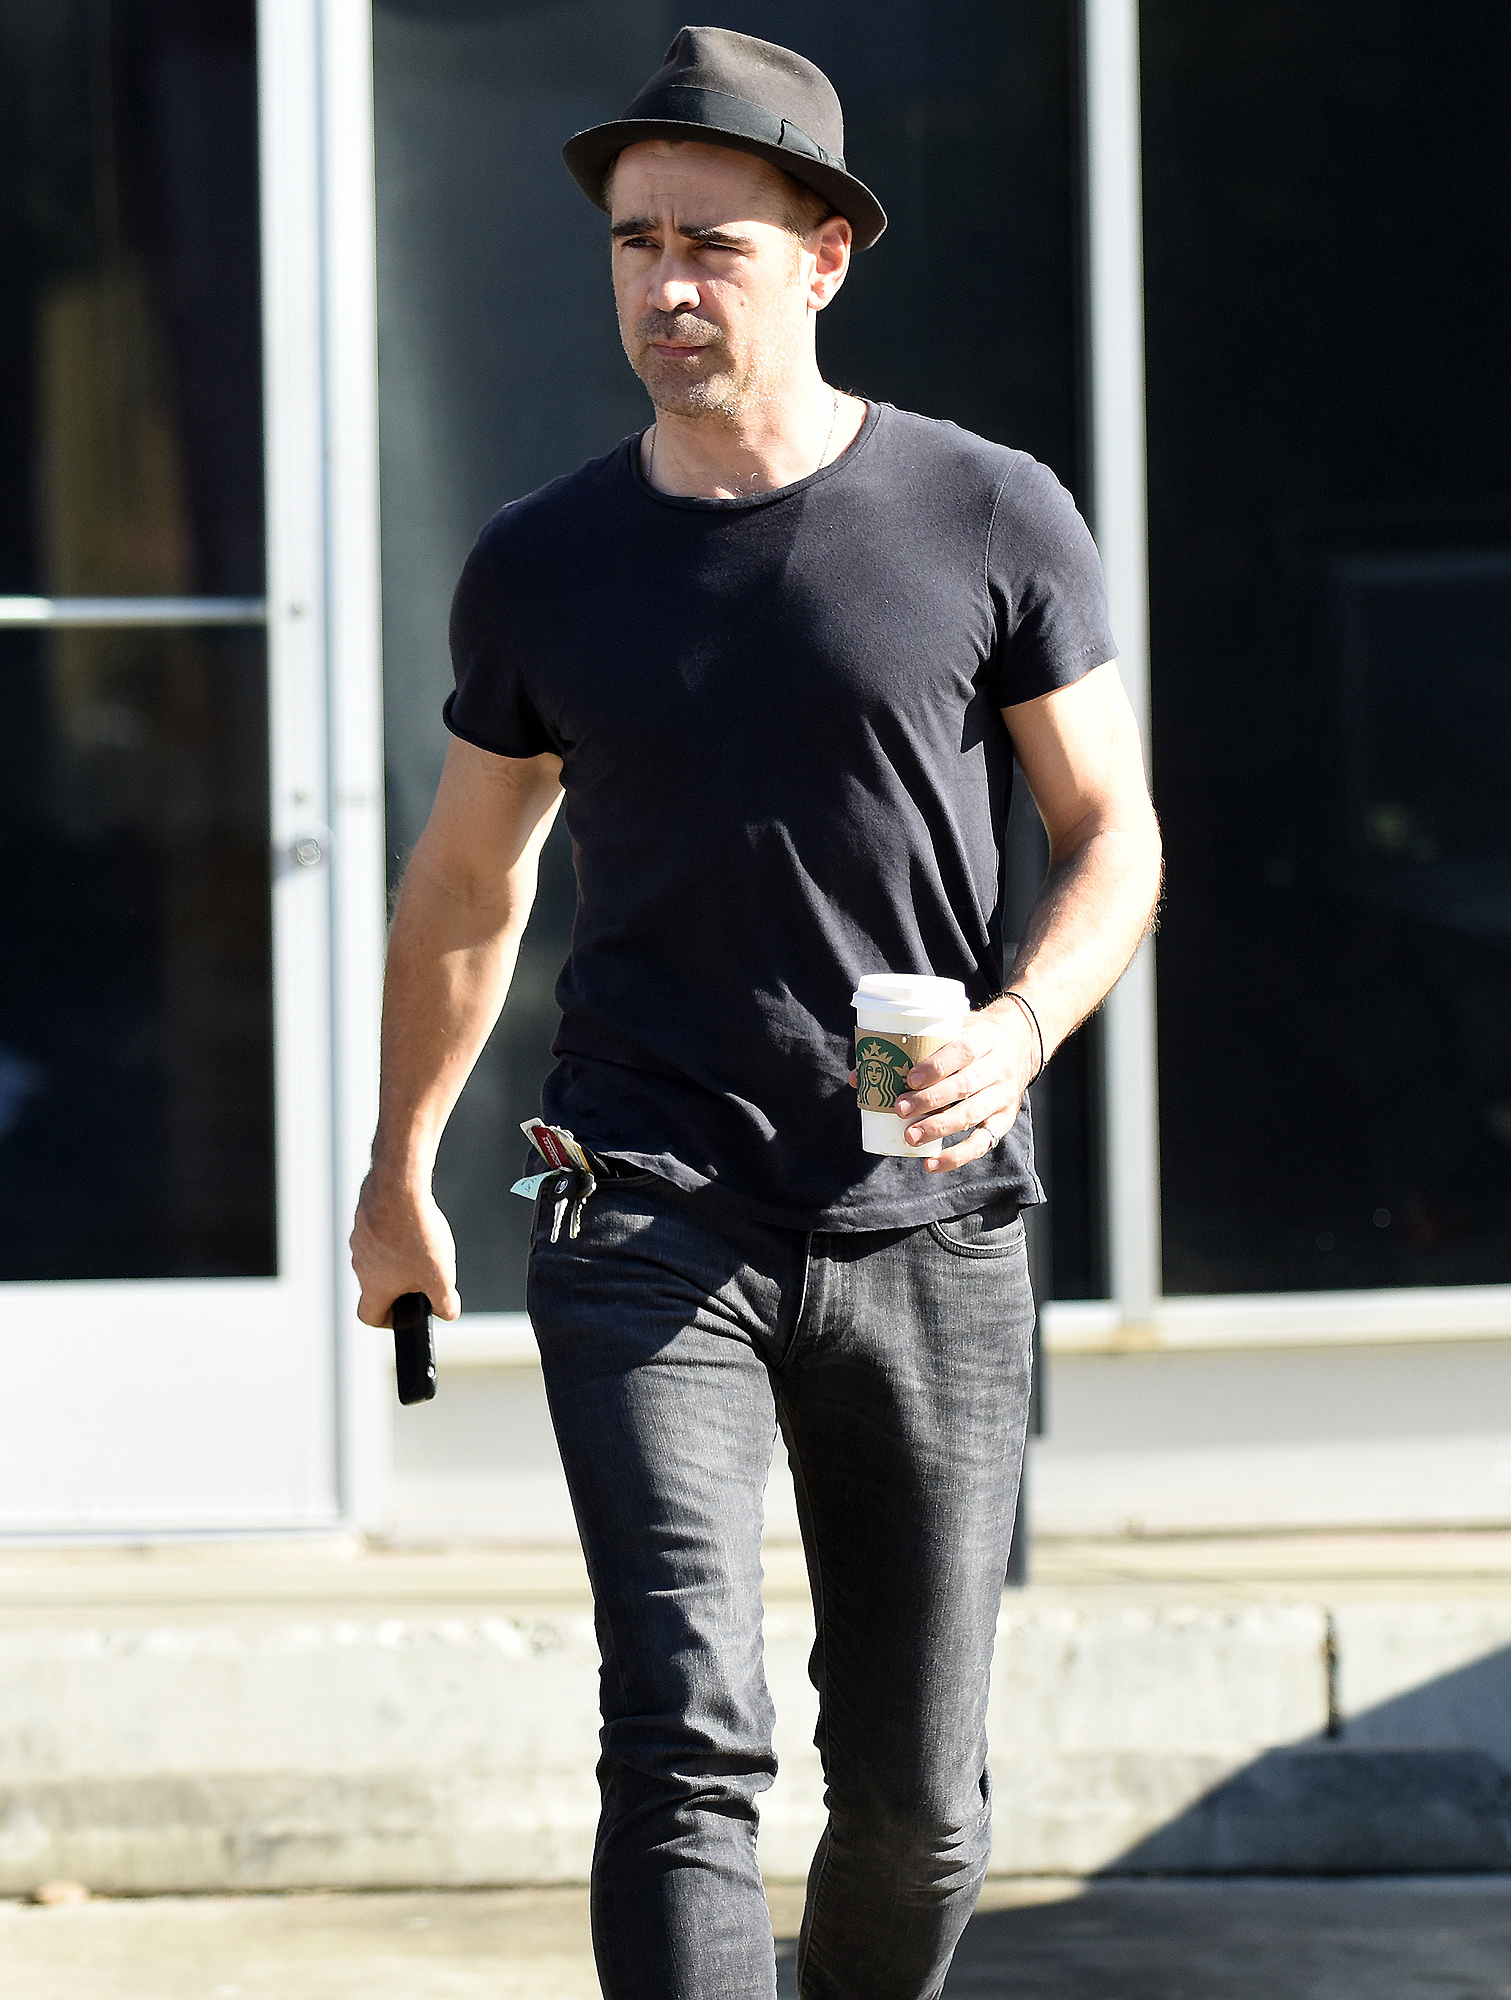 EXCLUSIVE: Colin Farrell gets his pant zipper stuck while shopping in Los Angeles.